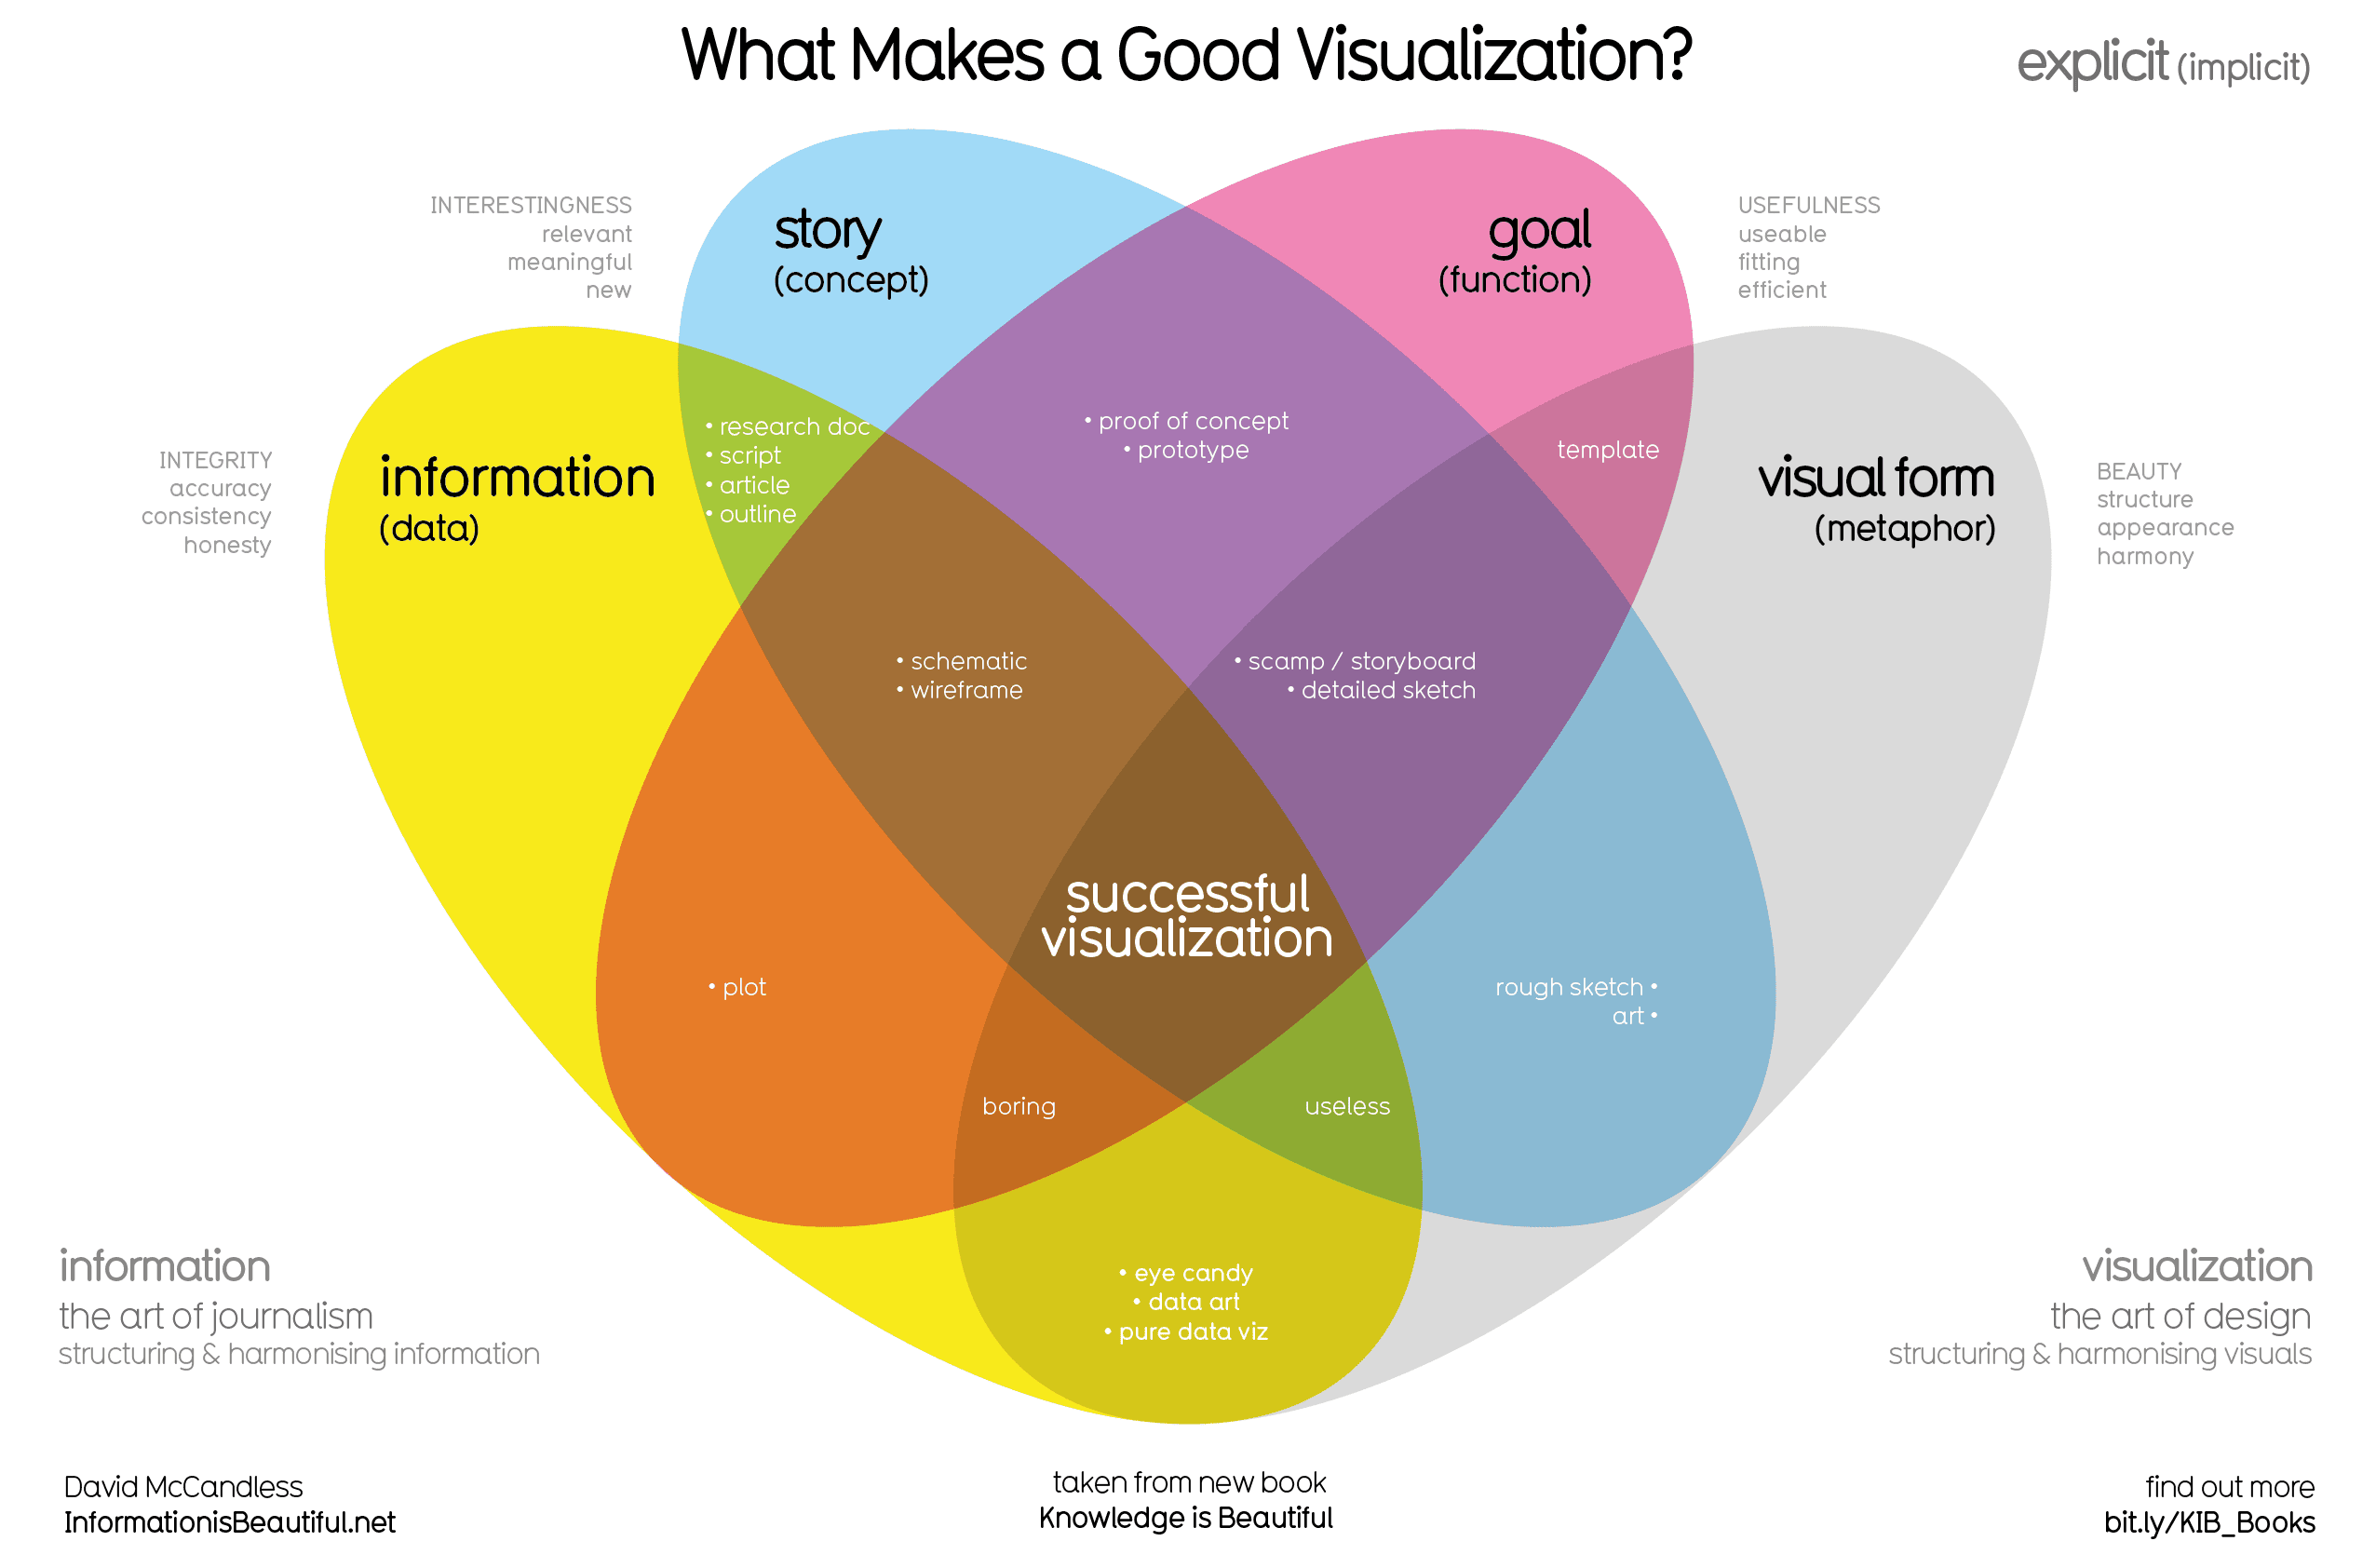 https://www.informationisbeautiful.net/visualizations/what-makes-a-good-data-visualization/